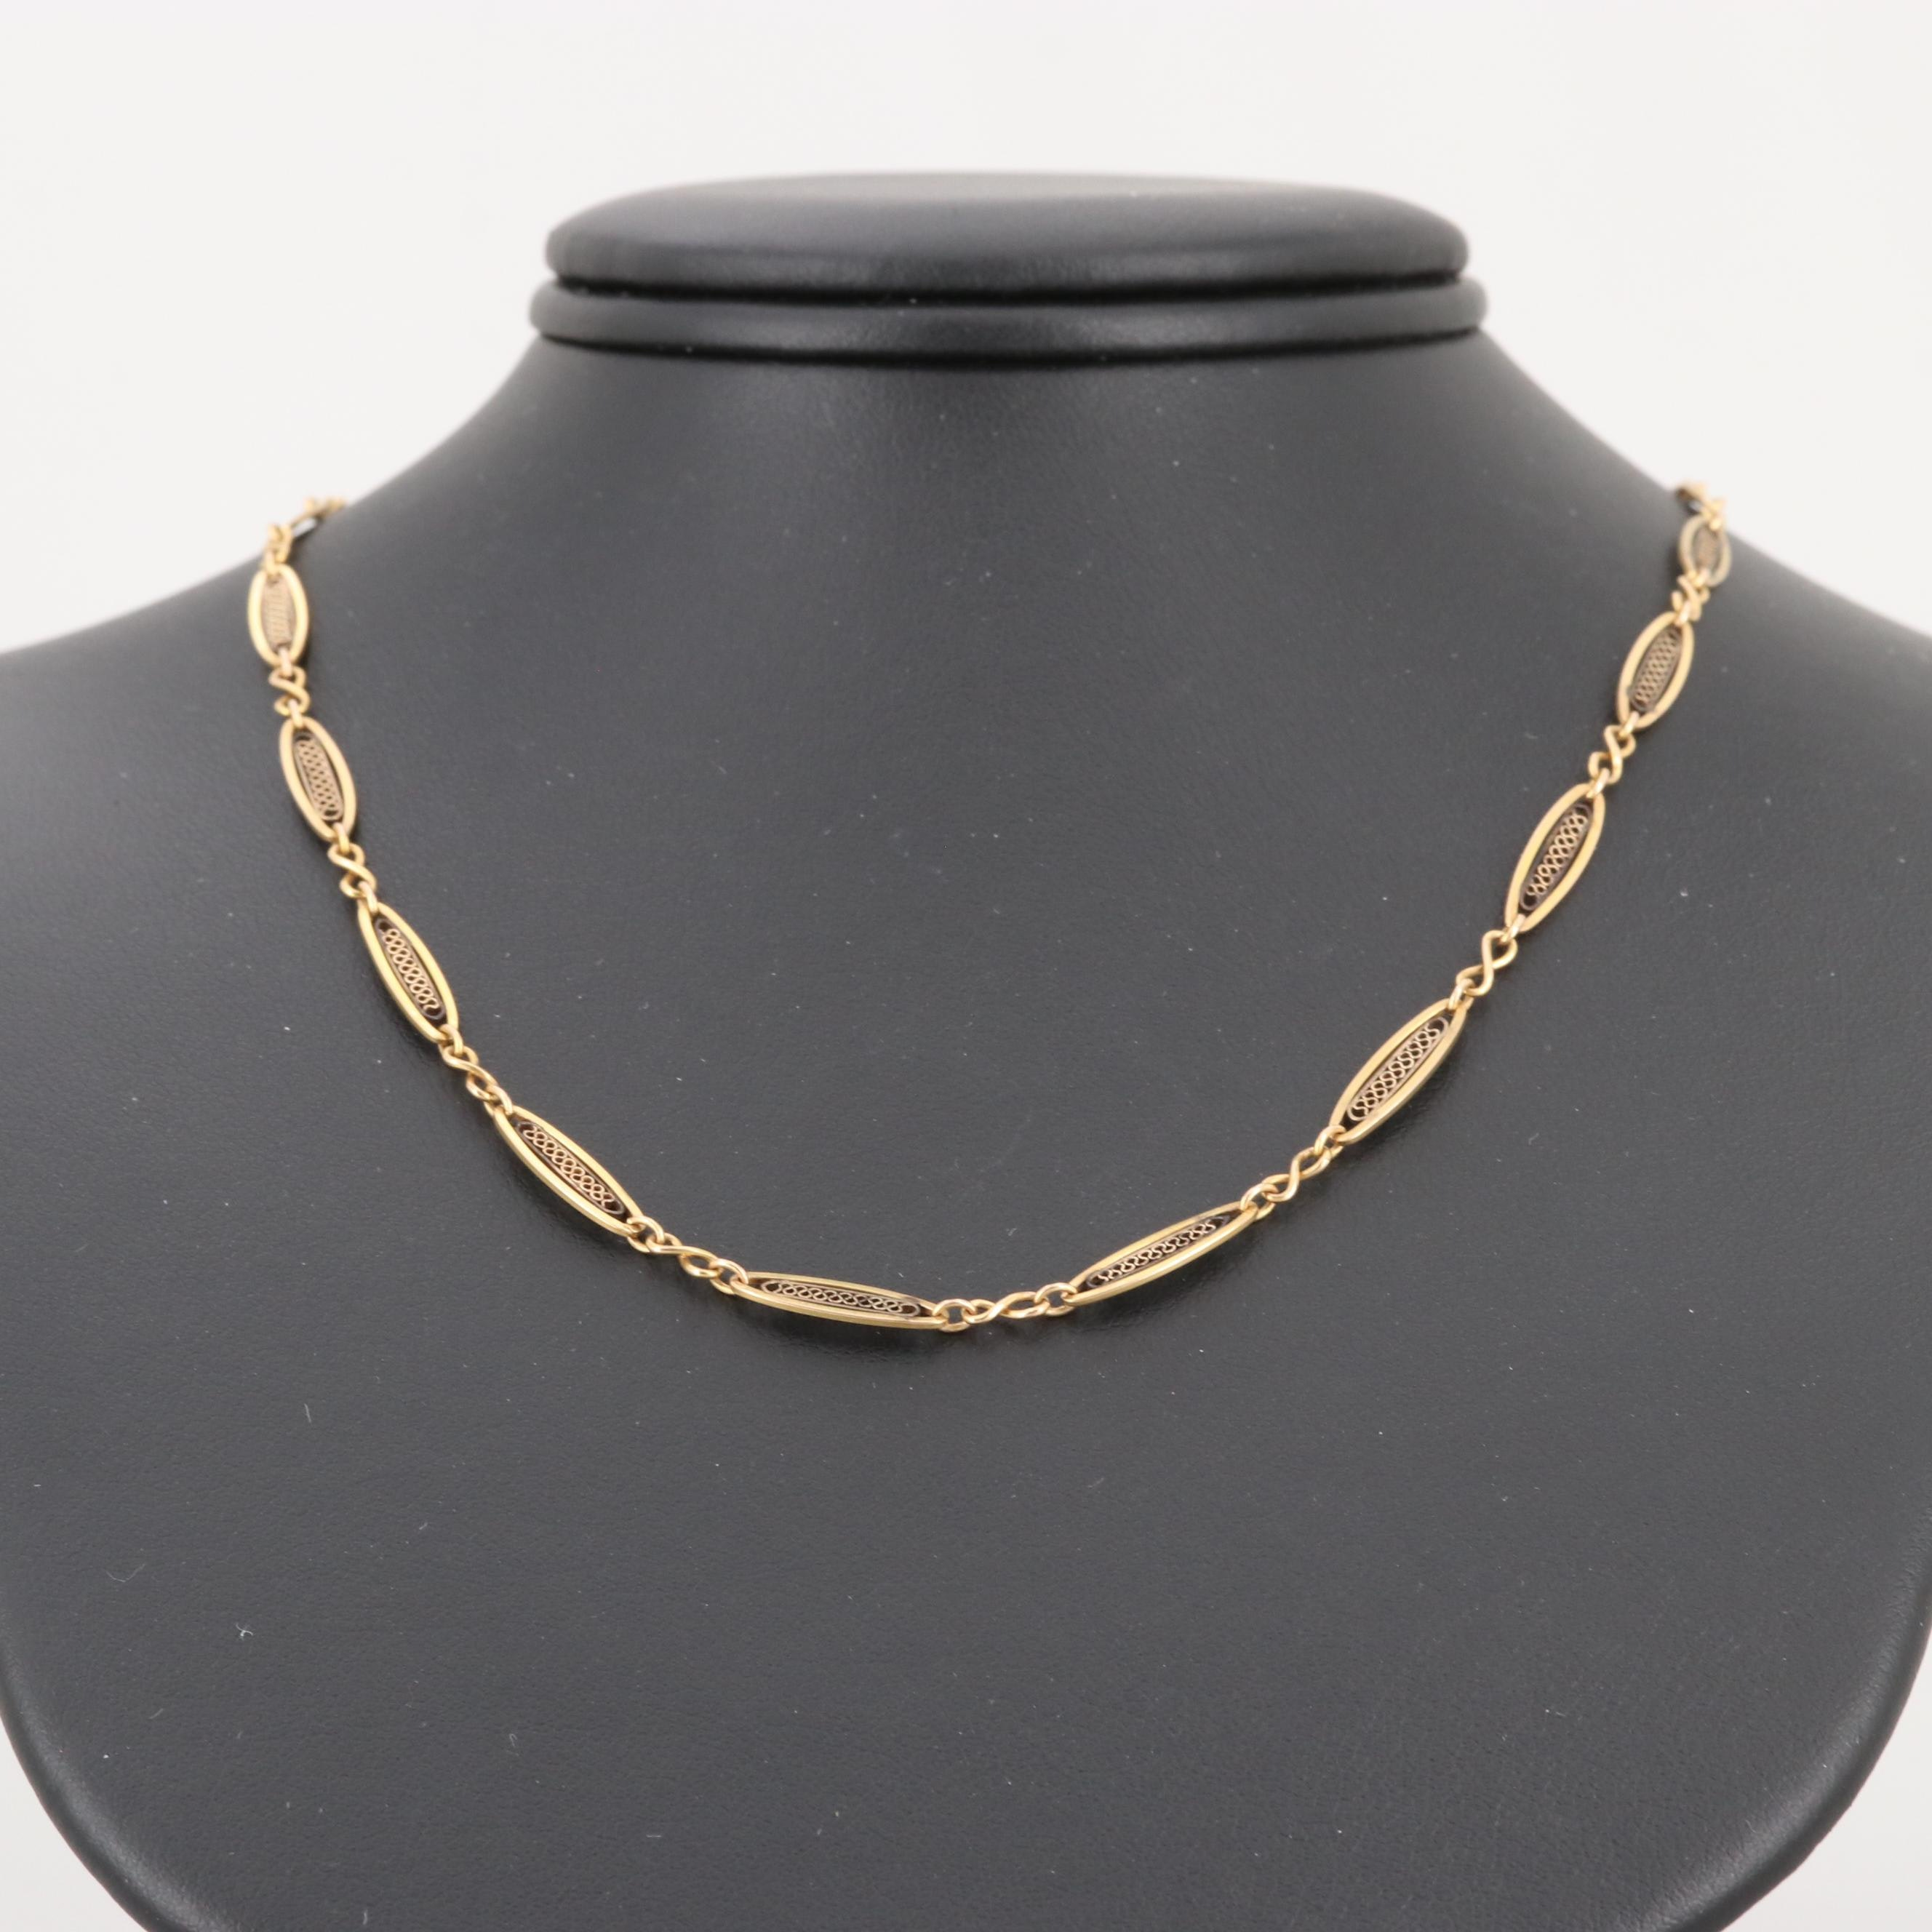 Vintage 14K Yellow Gold Chain Necklace with Filigree Accents